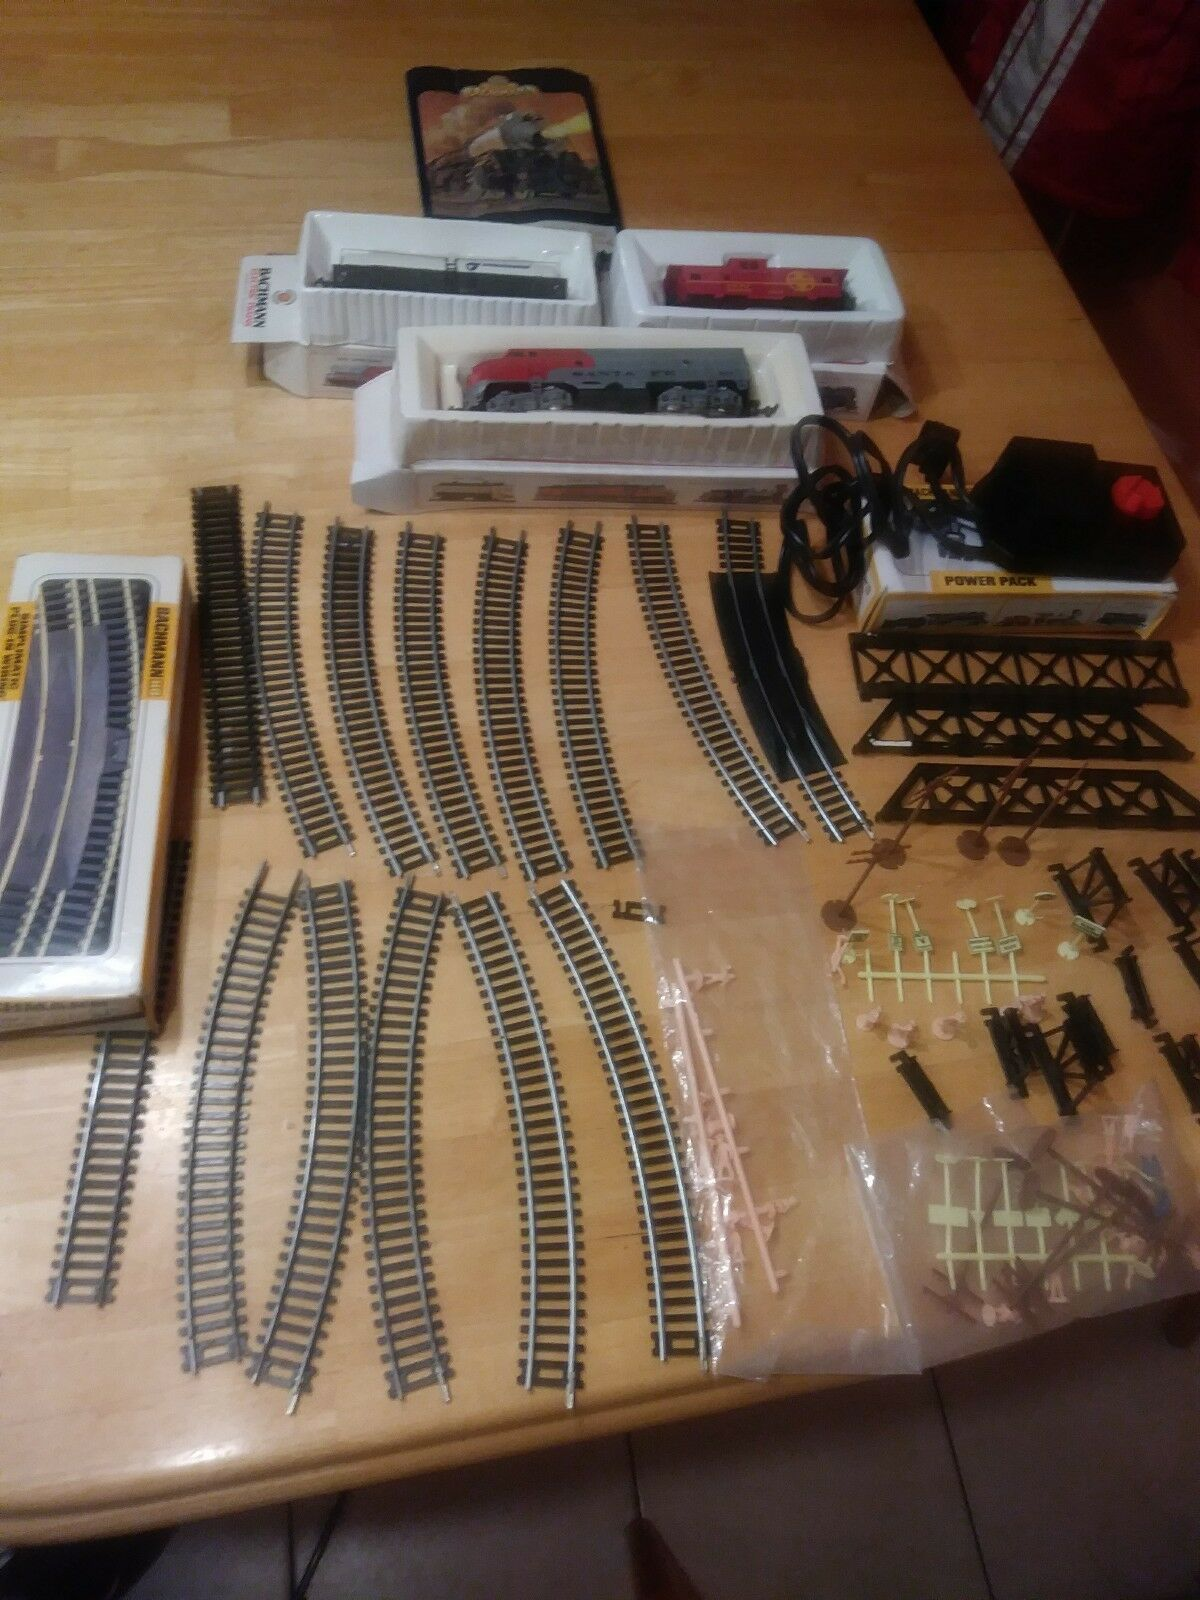 LOT OF MANY BACHMANN HO SCALE ELECTRIC TRAINS AND ACCESSORIES